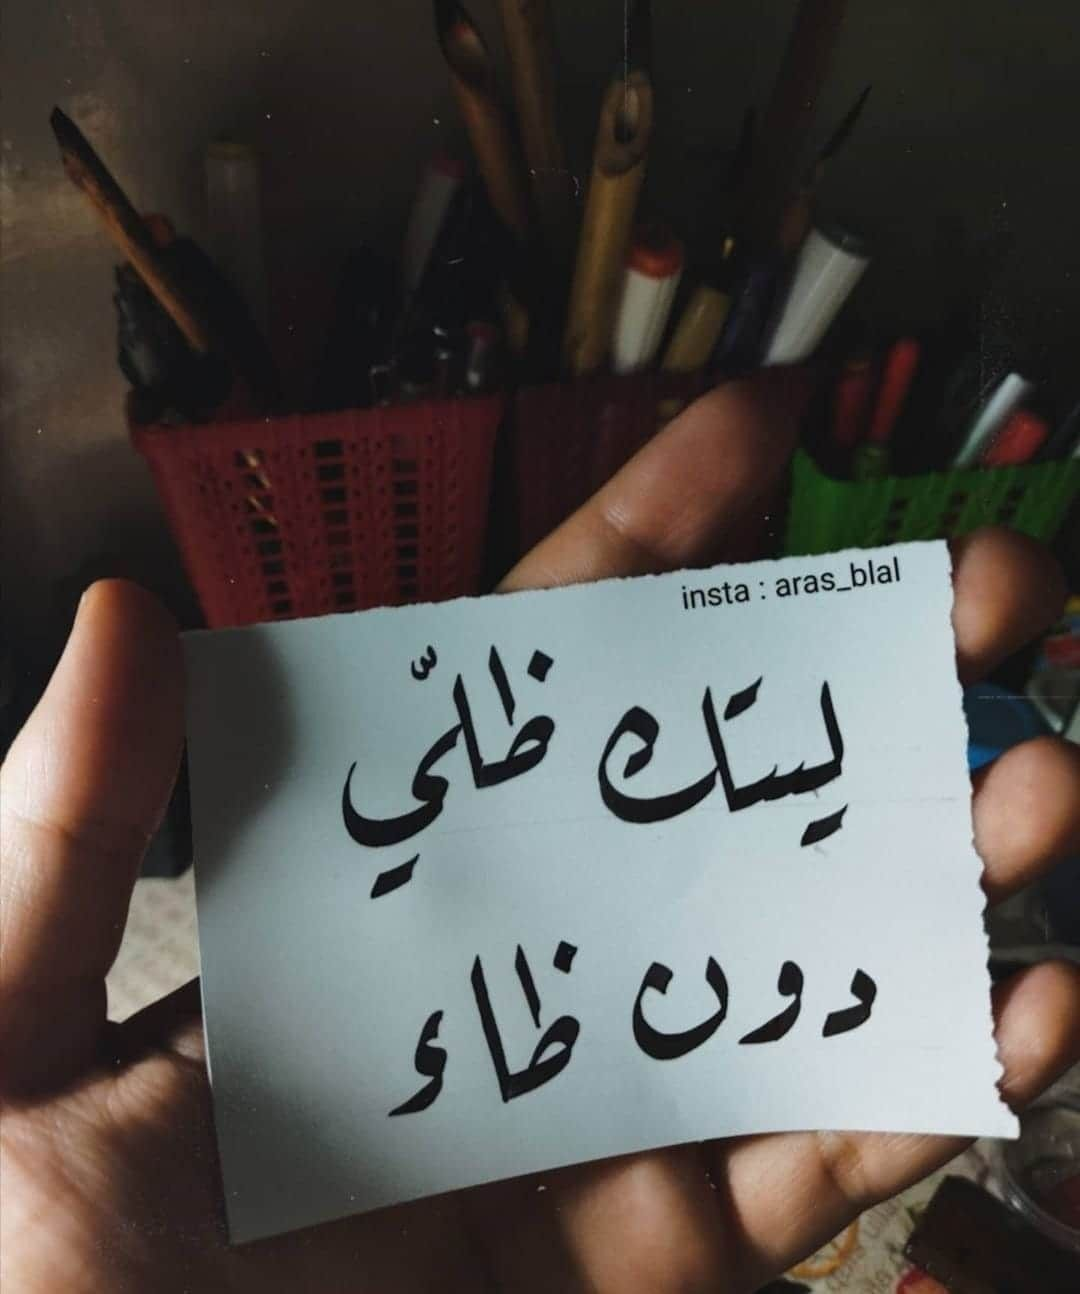 Pin By Youseff On مناجاتي لك Beautiful Arabic Words Arabic Love Quotes Cute Love Wallpapers